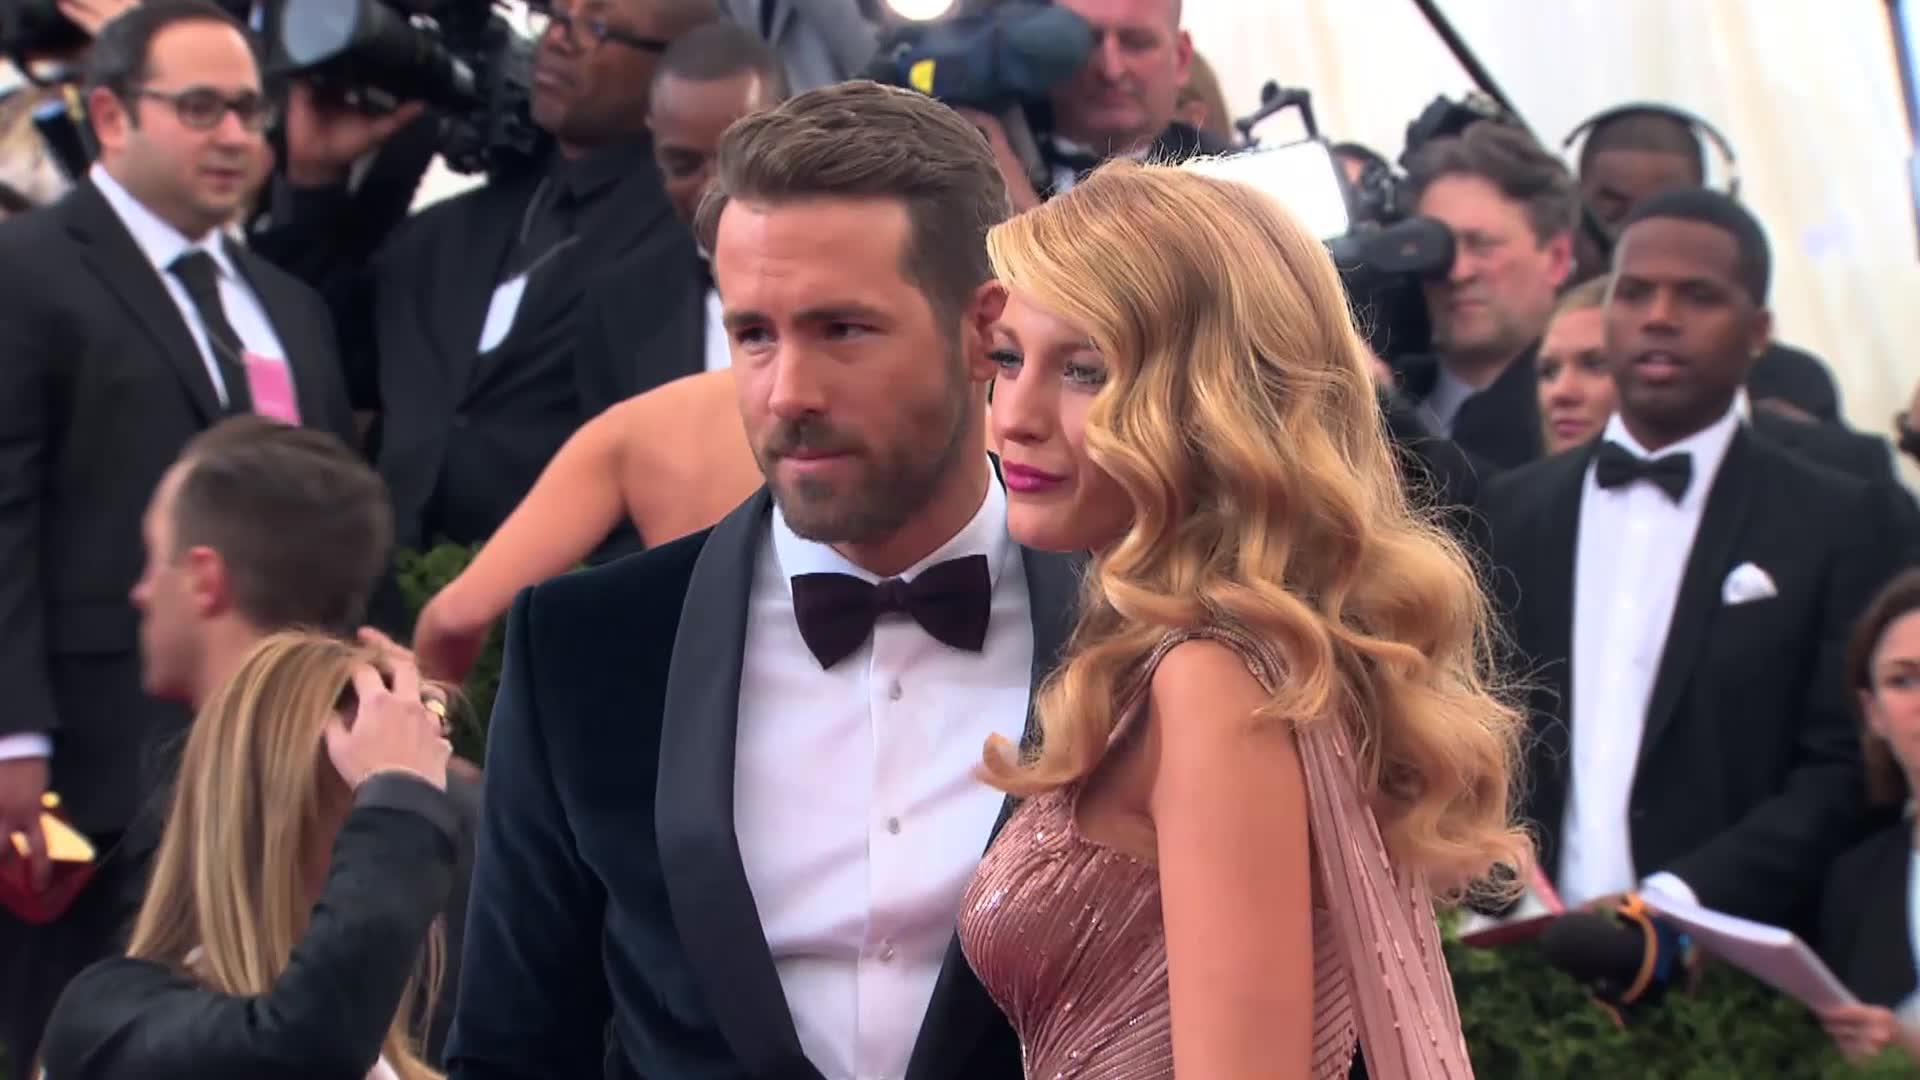 Ryan Reynolds Reveals How He and Blake Lively Balance Work and Home